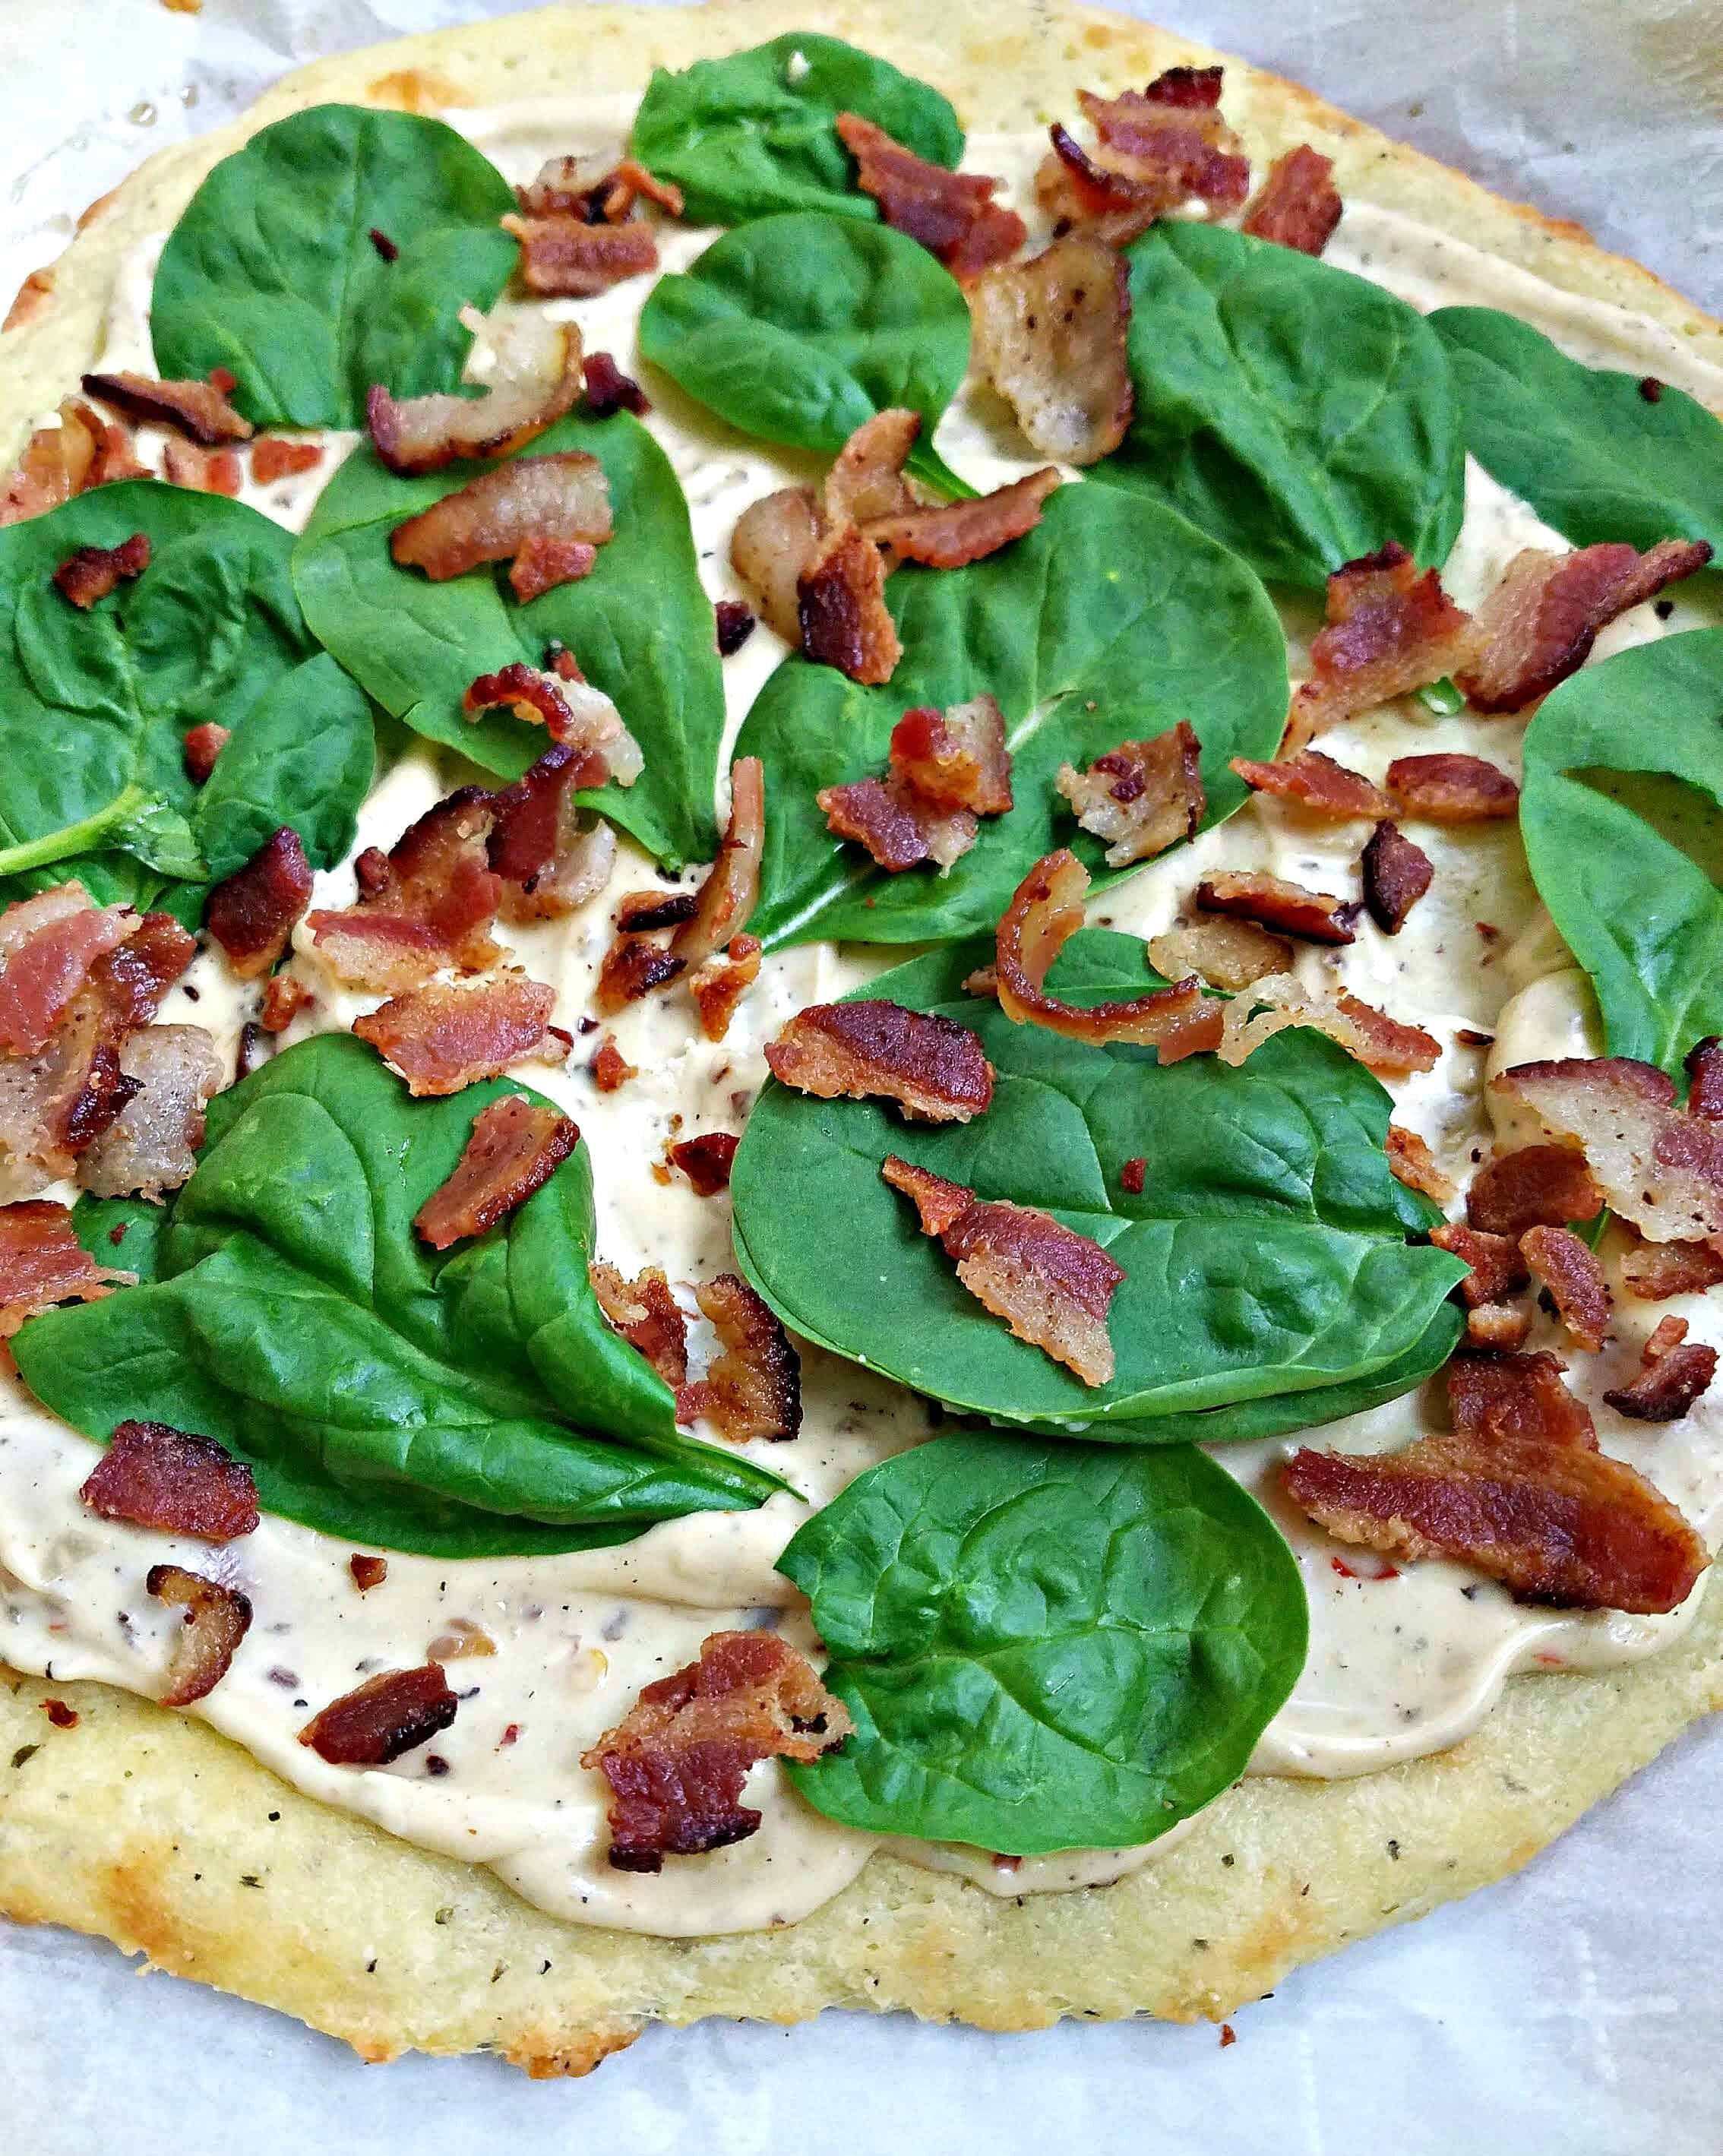 uncooked pizza with spinach and bacon